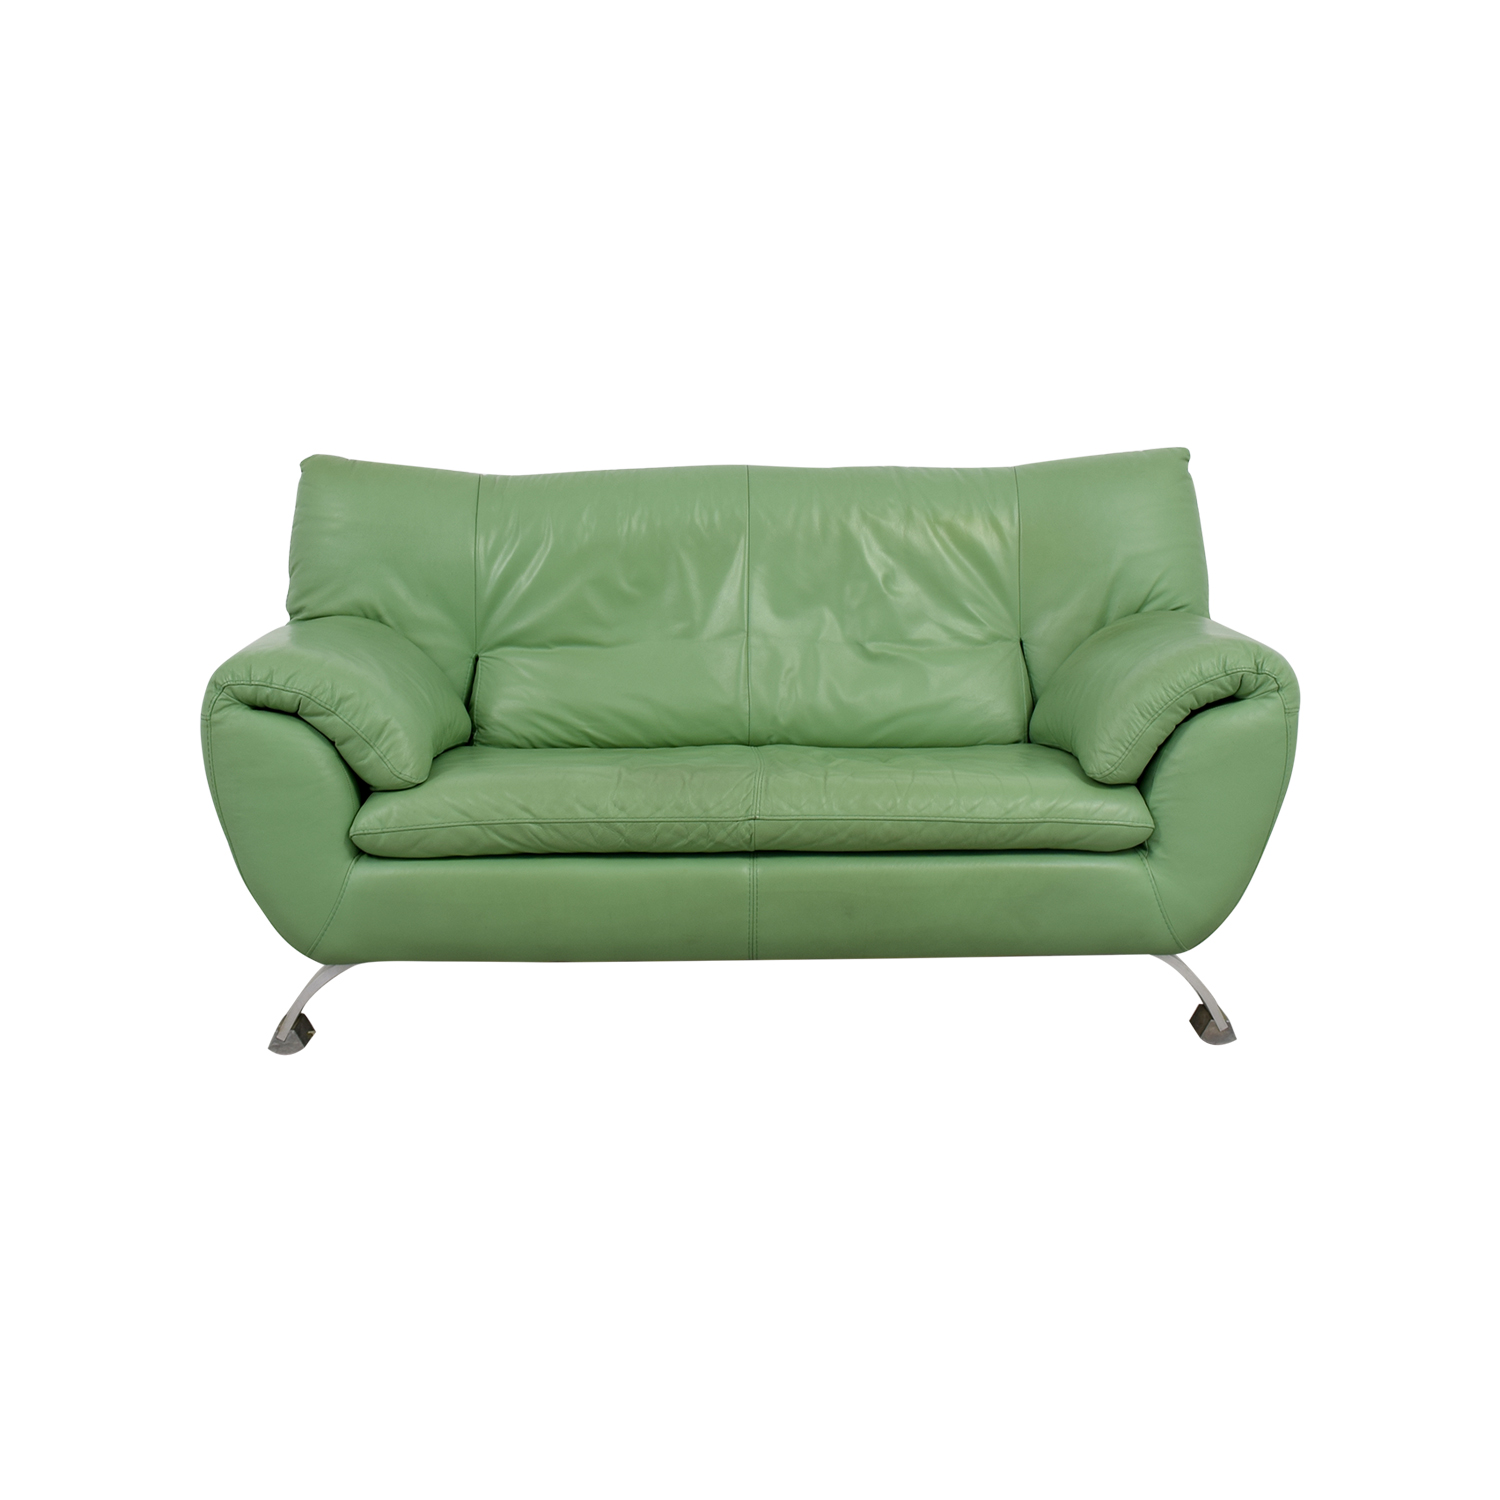 nicoletti calia sofa review abbott vintage cigar tufted leather sofas angel sectional by italy